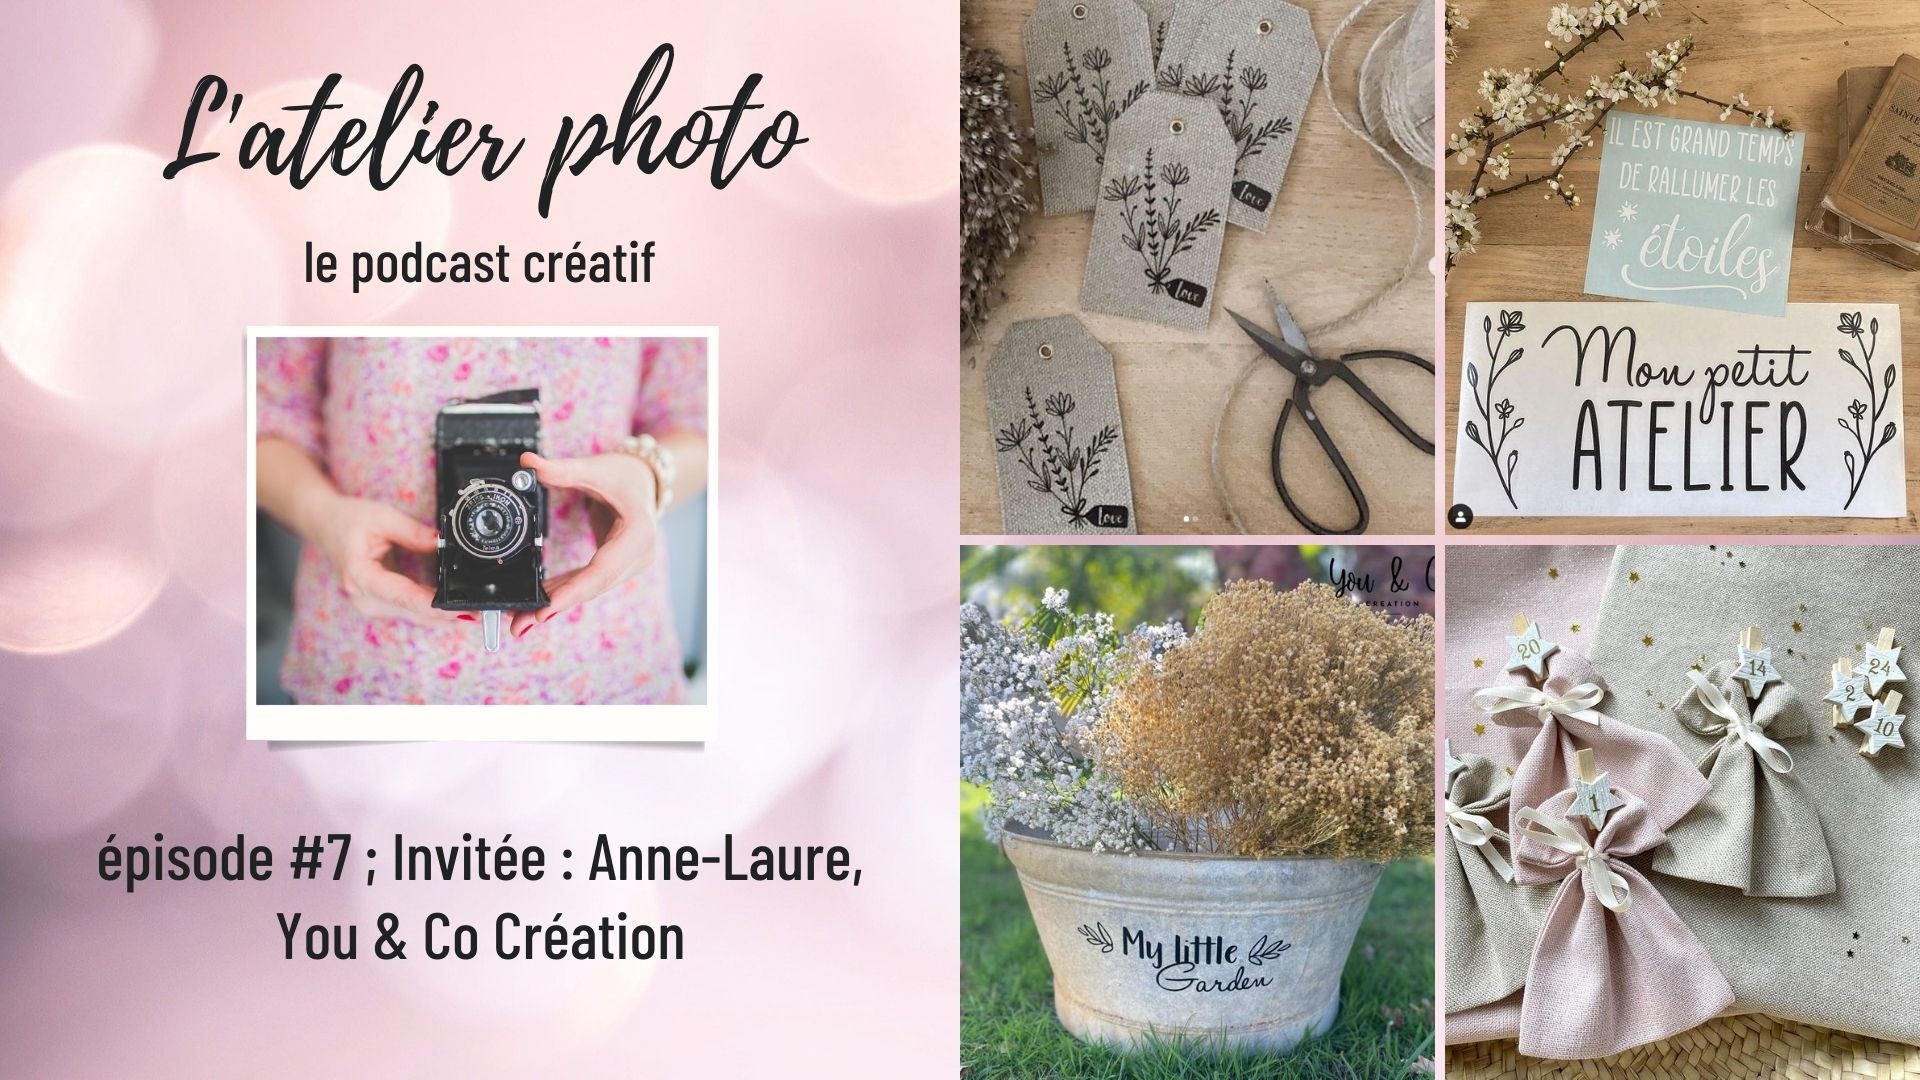 Podcast #7 - Anne-Laure, You & Co Création